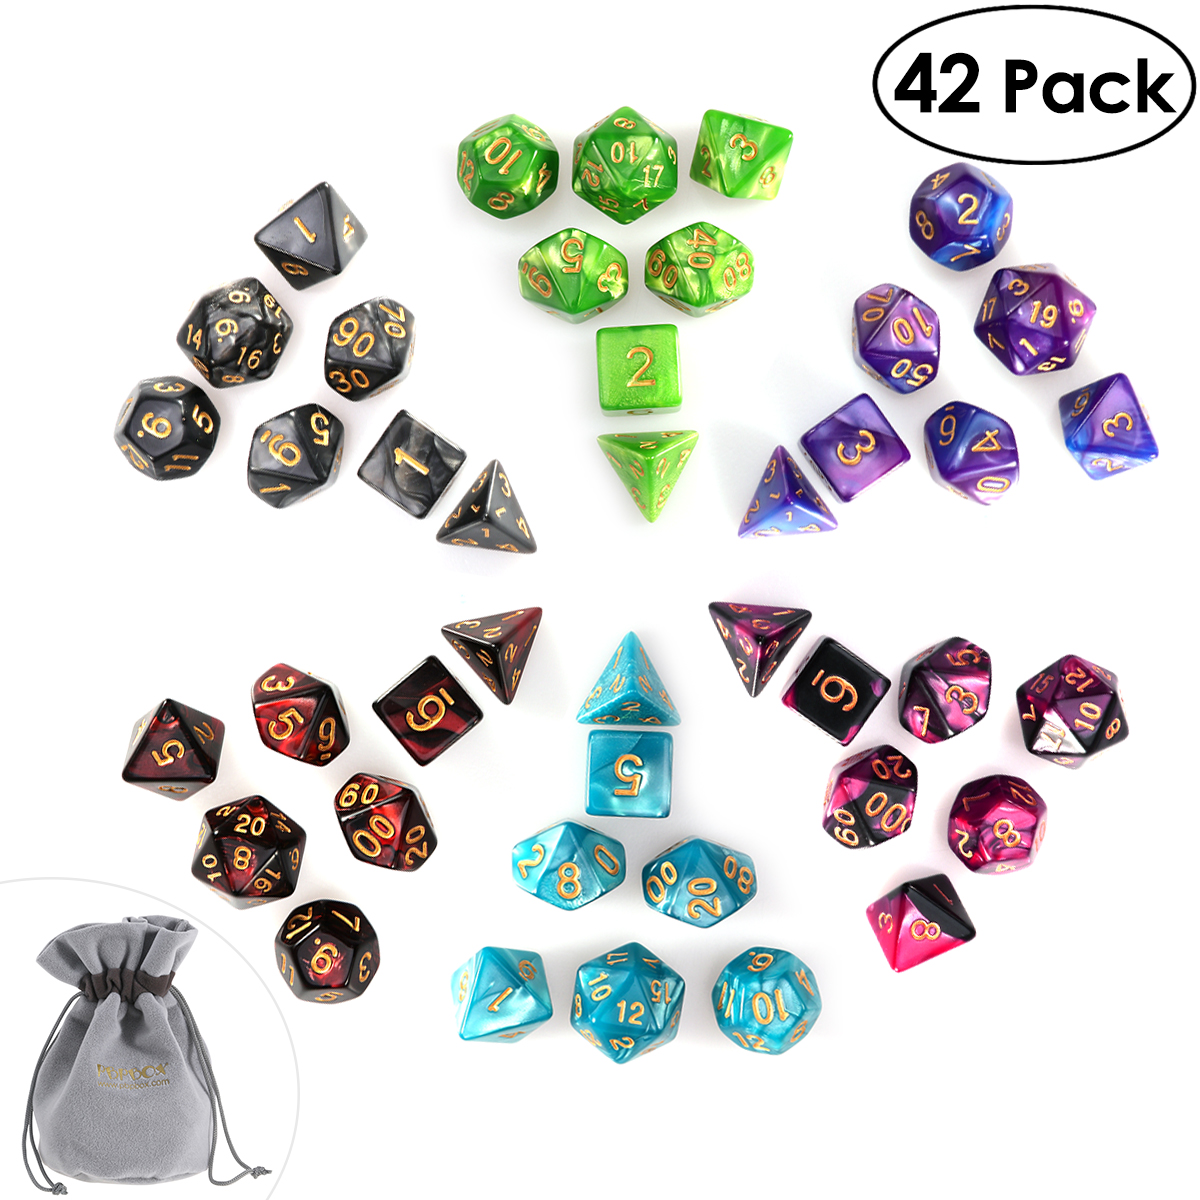 PBPBOX 42pcs Polyhedral Dice for Dungeons and Dragon Board Game Dice with  Number for Dungeons & Dragons Gambling Dice Set